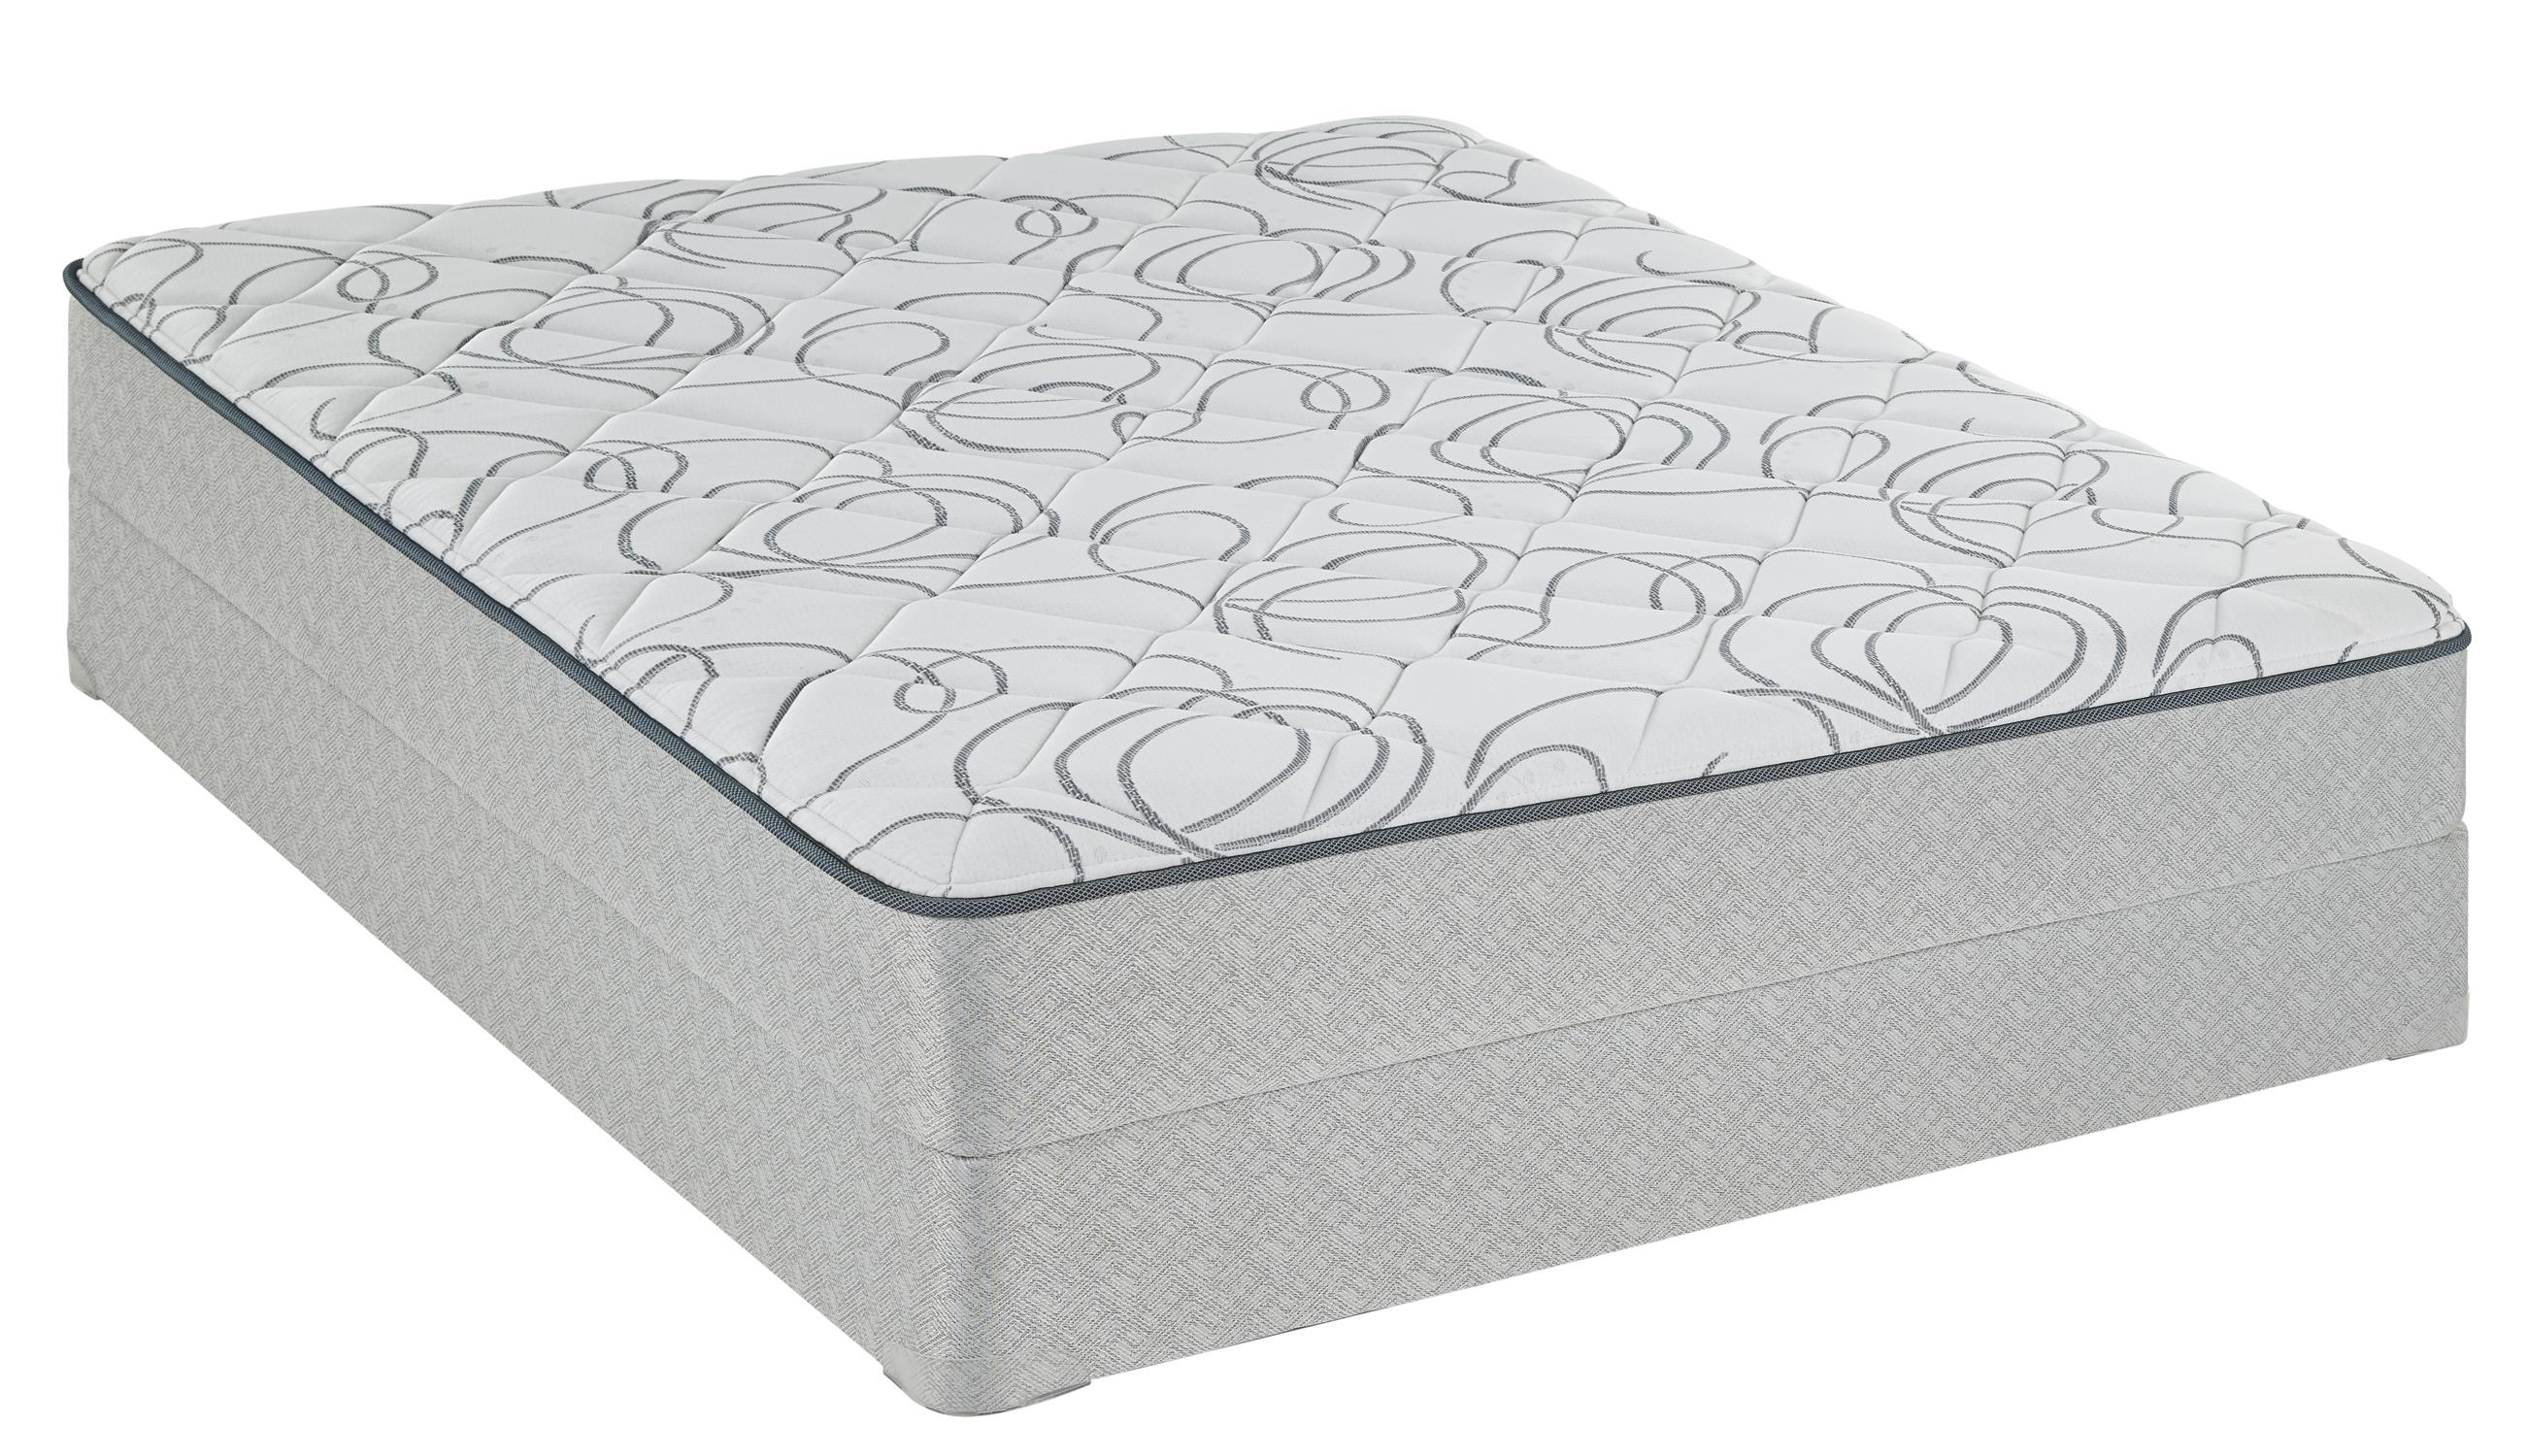 Sealy Sealy Brand Charwood King Firm Mattress Set - Item Number: Firm-K+2xFoundationK